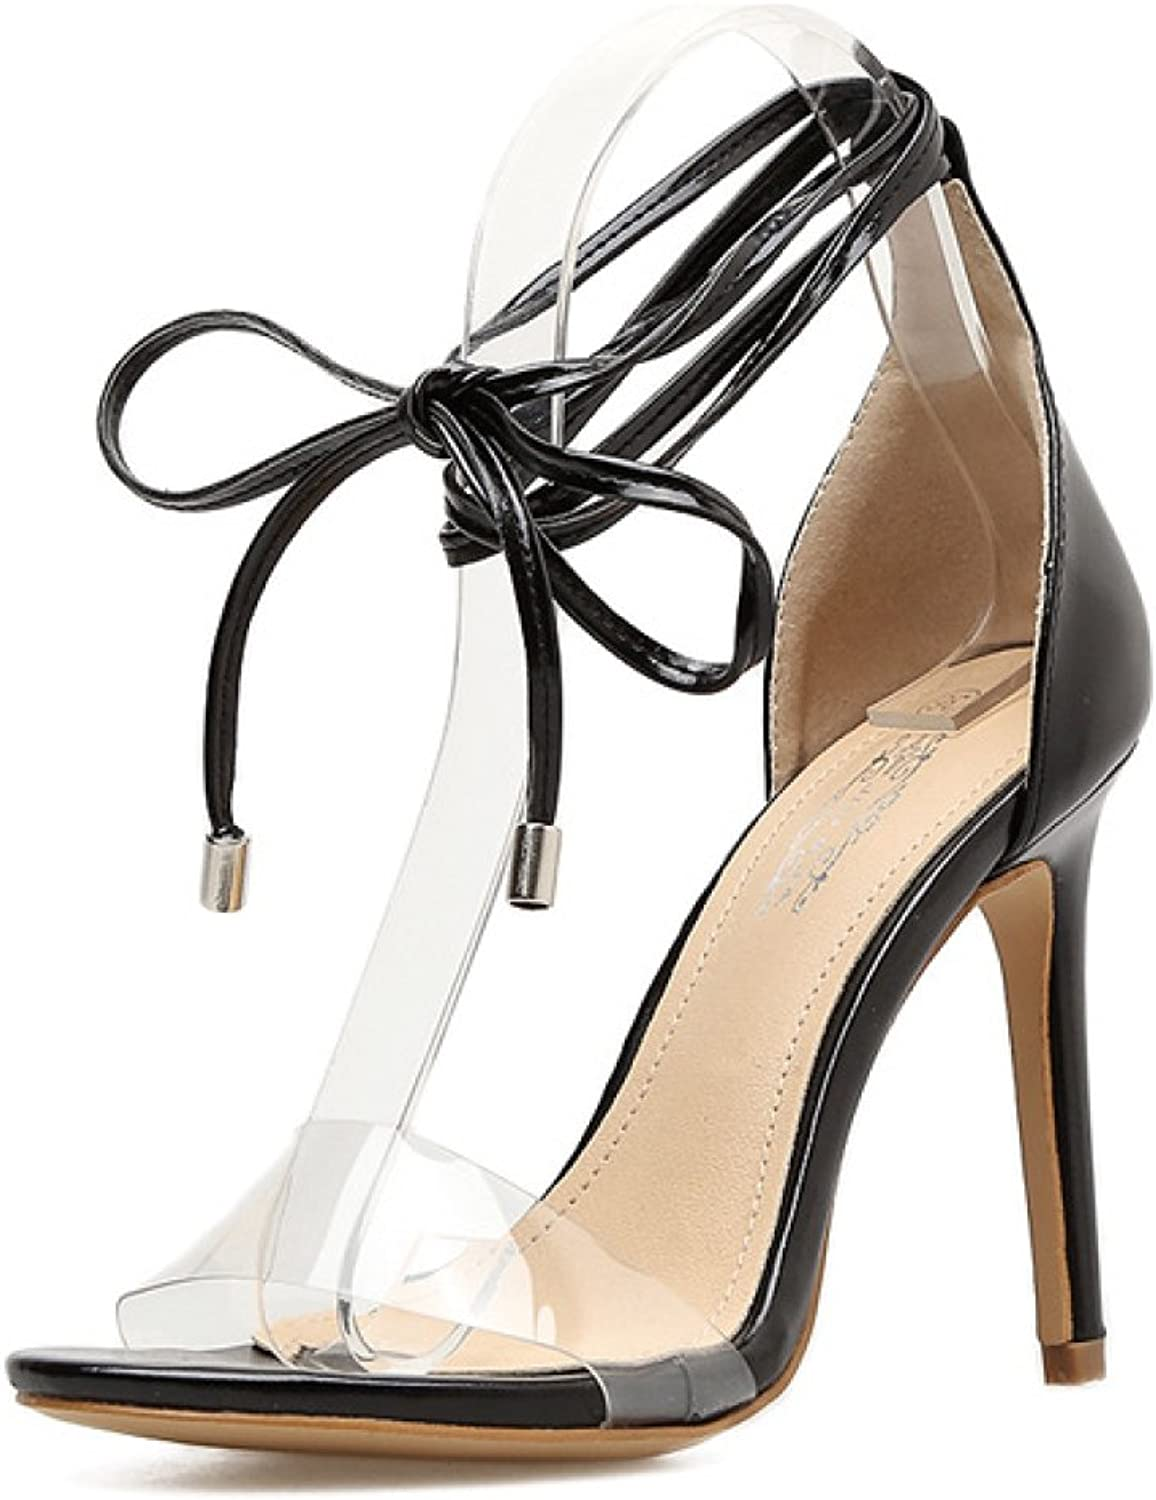 Women's High Heel Lace Up Summer Ankle Strap Sandals Ladies Tie Up Party Wedding Prom shoes,Black-EU 39=8.5B(M) US